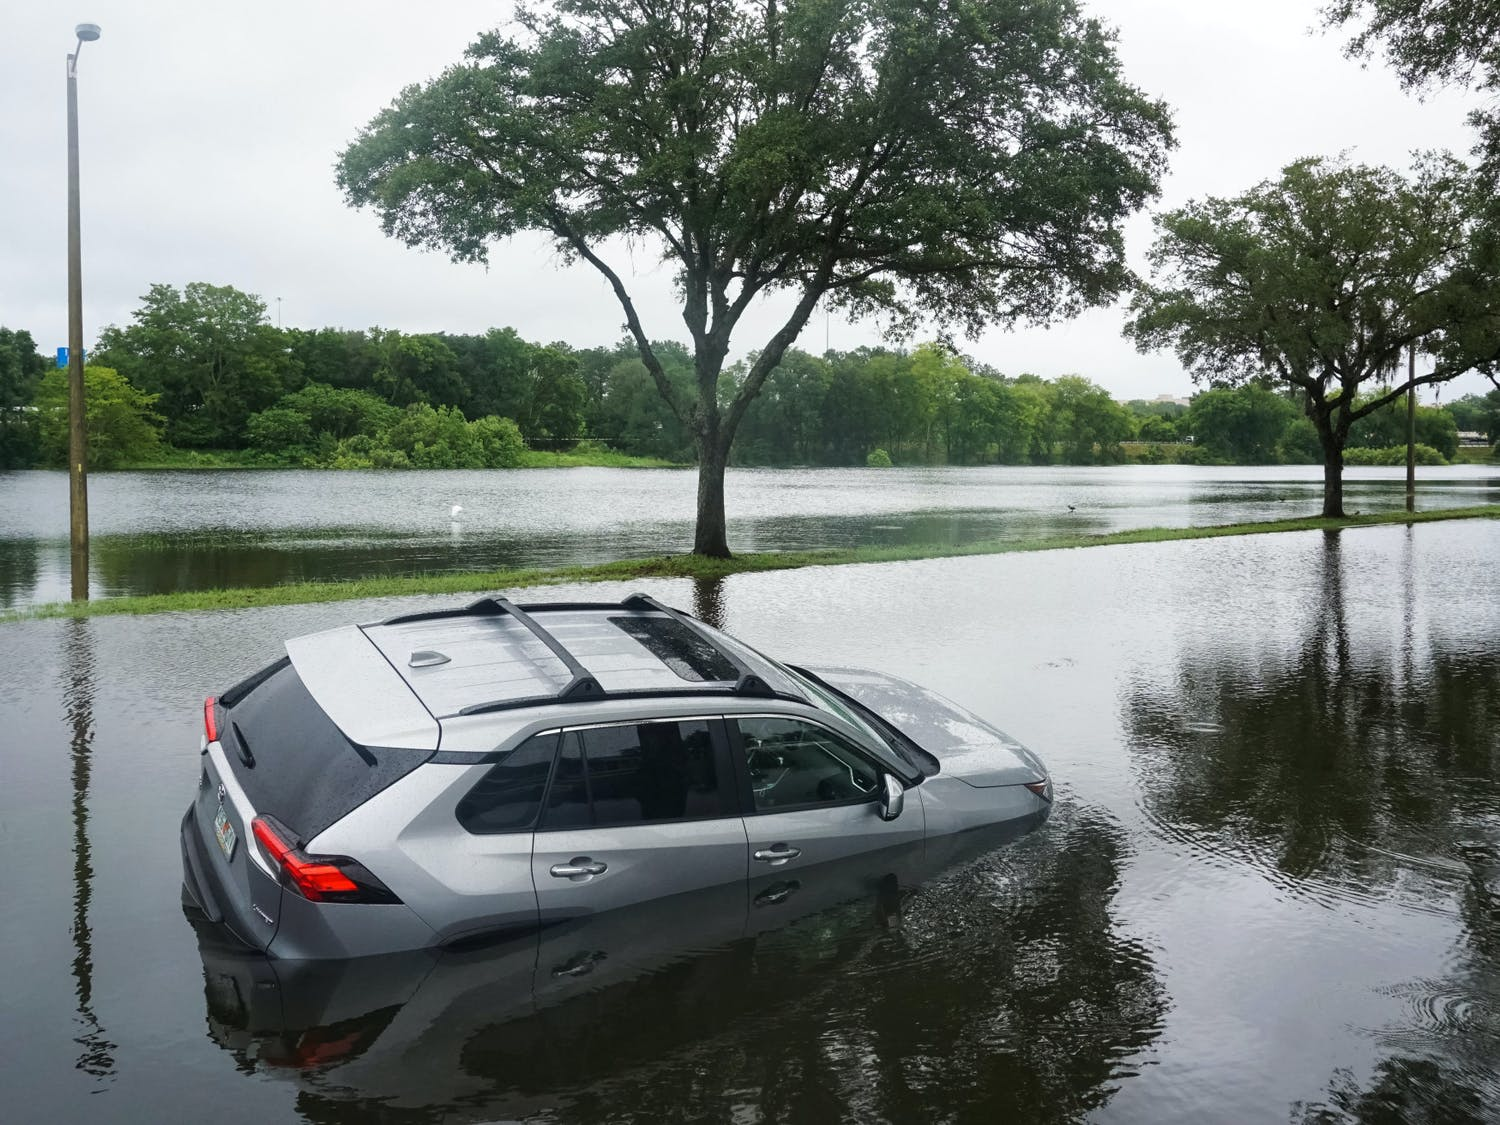 A deserted Toyota RAV-4 on Northwest Fourth Boulevard in Gainesville on Wednesday, July 7, 2021. The Gainesville Police Department stated this vehicle and one other got stuck after drivers attempted to cross the flooded street.